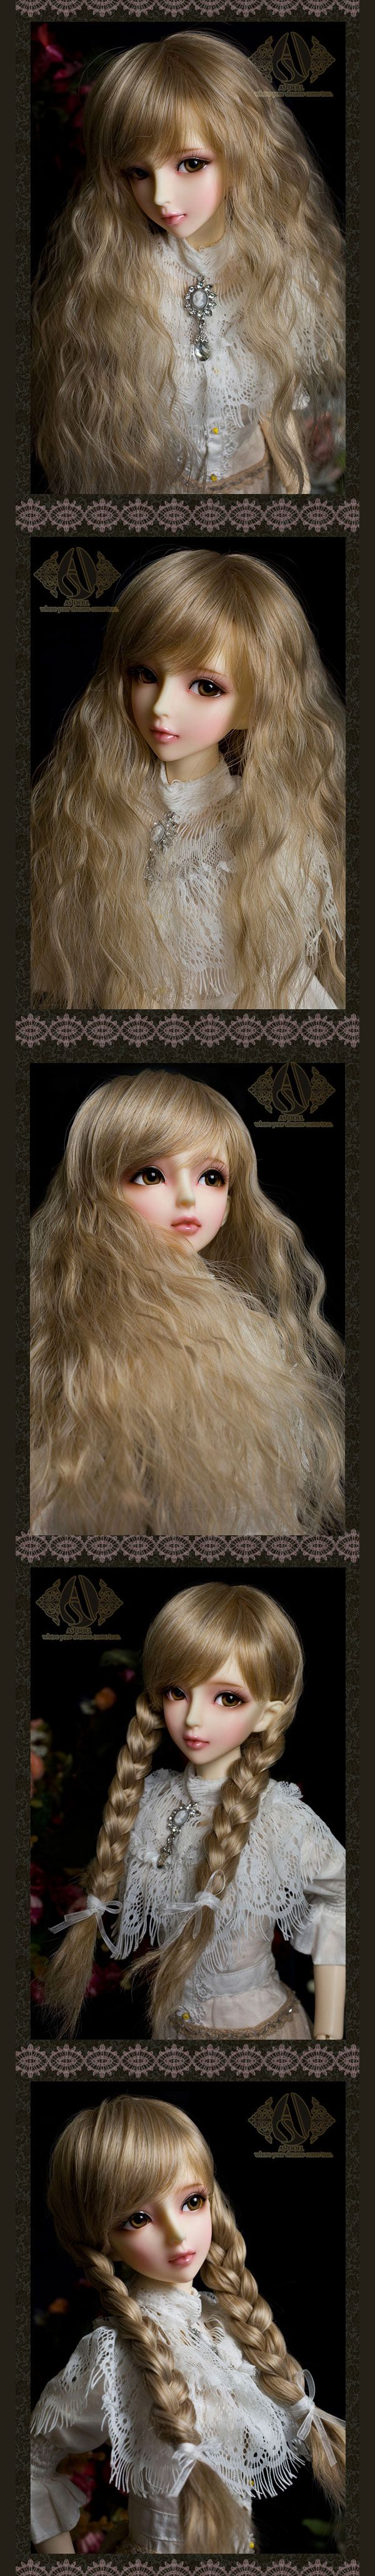 From Legend Doll